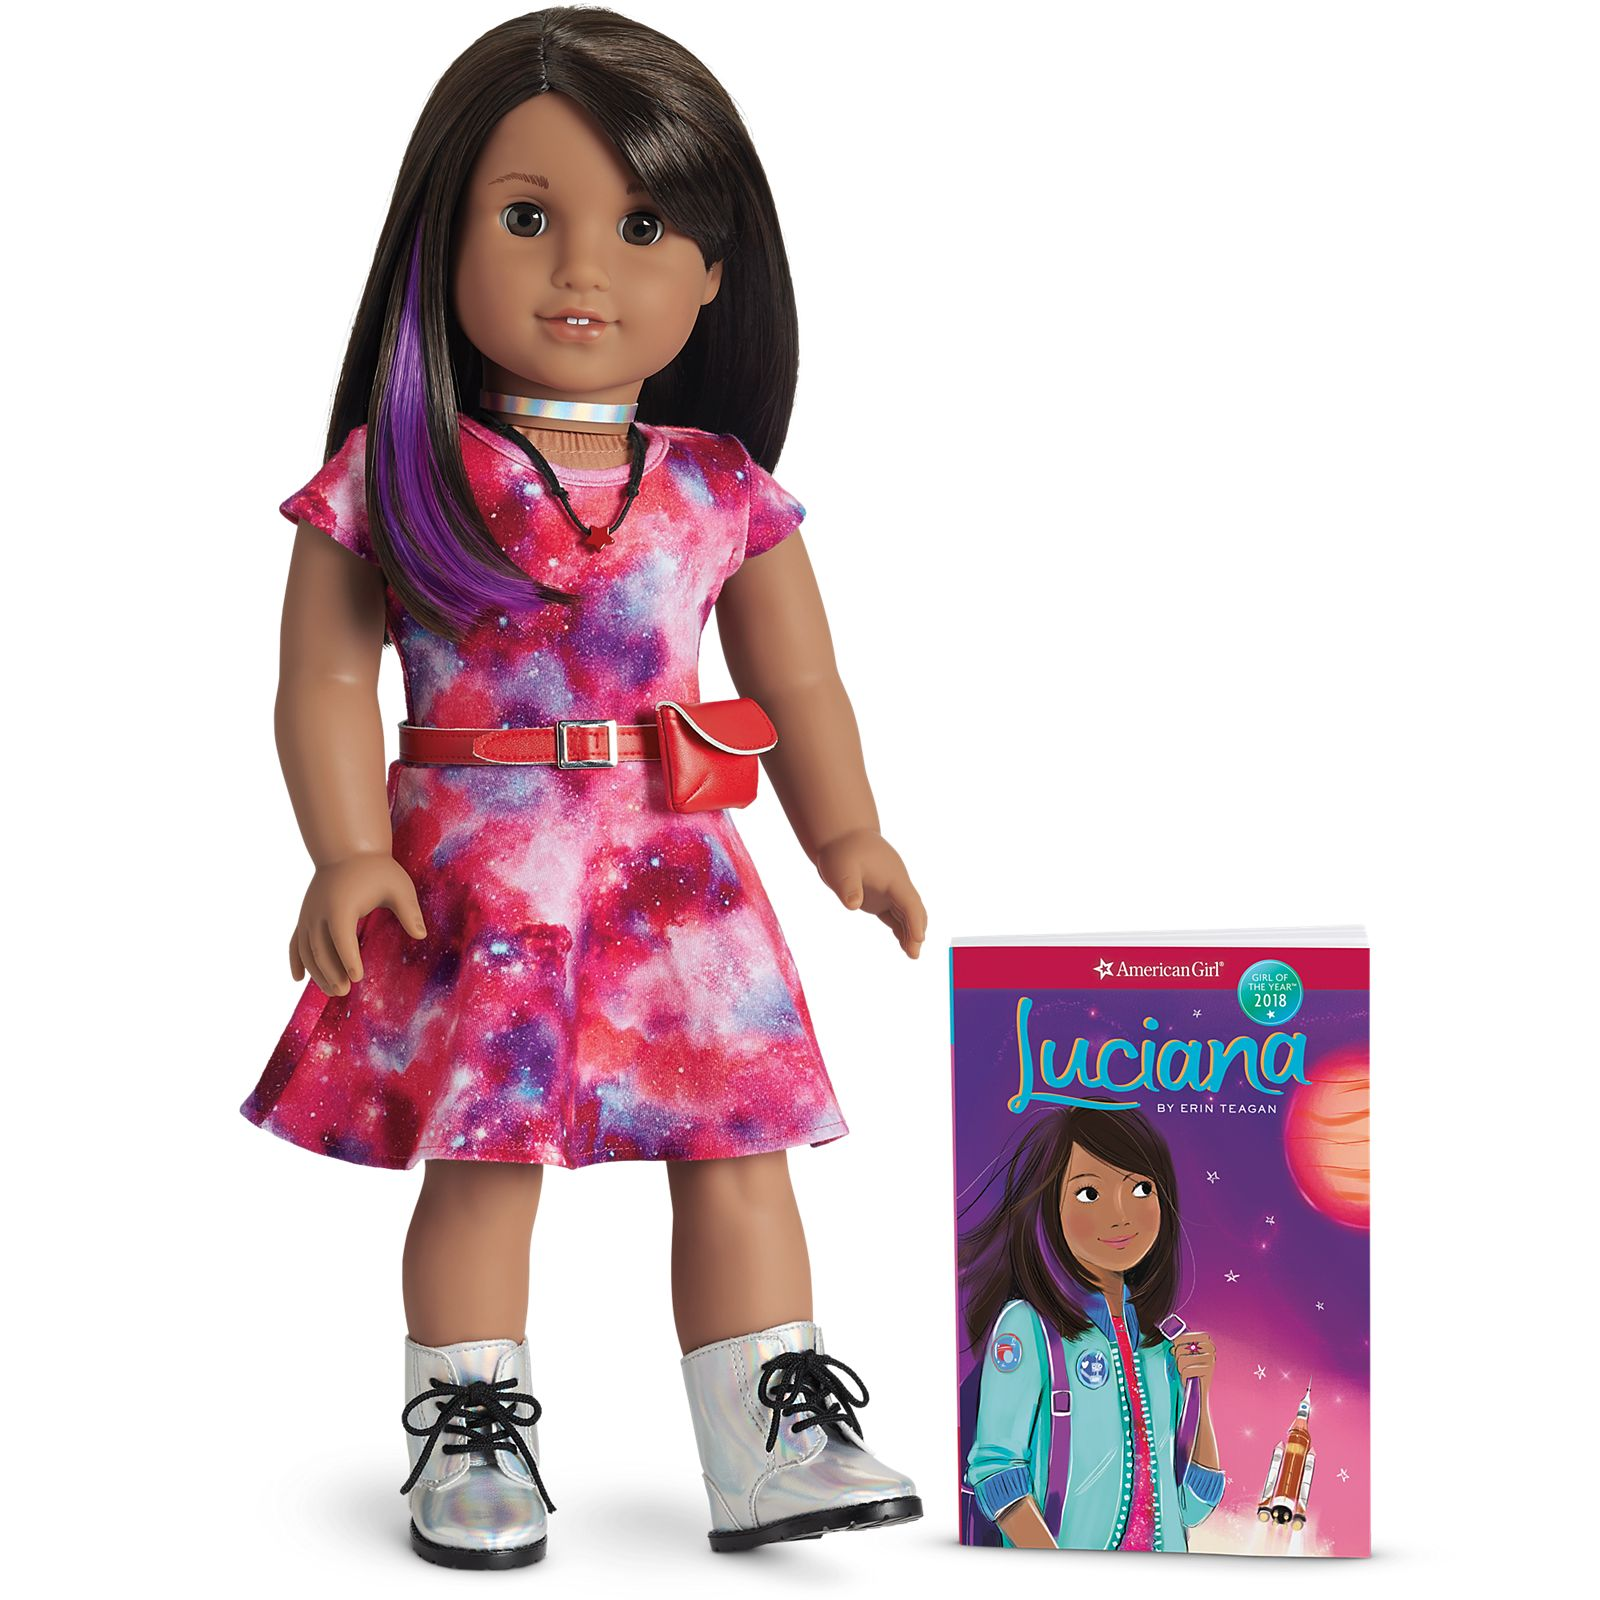 American Girl Luciana Doll & Book